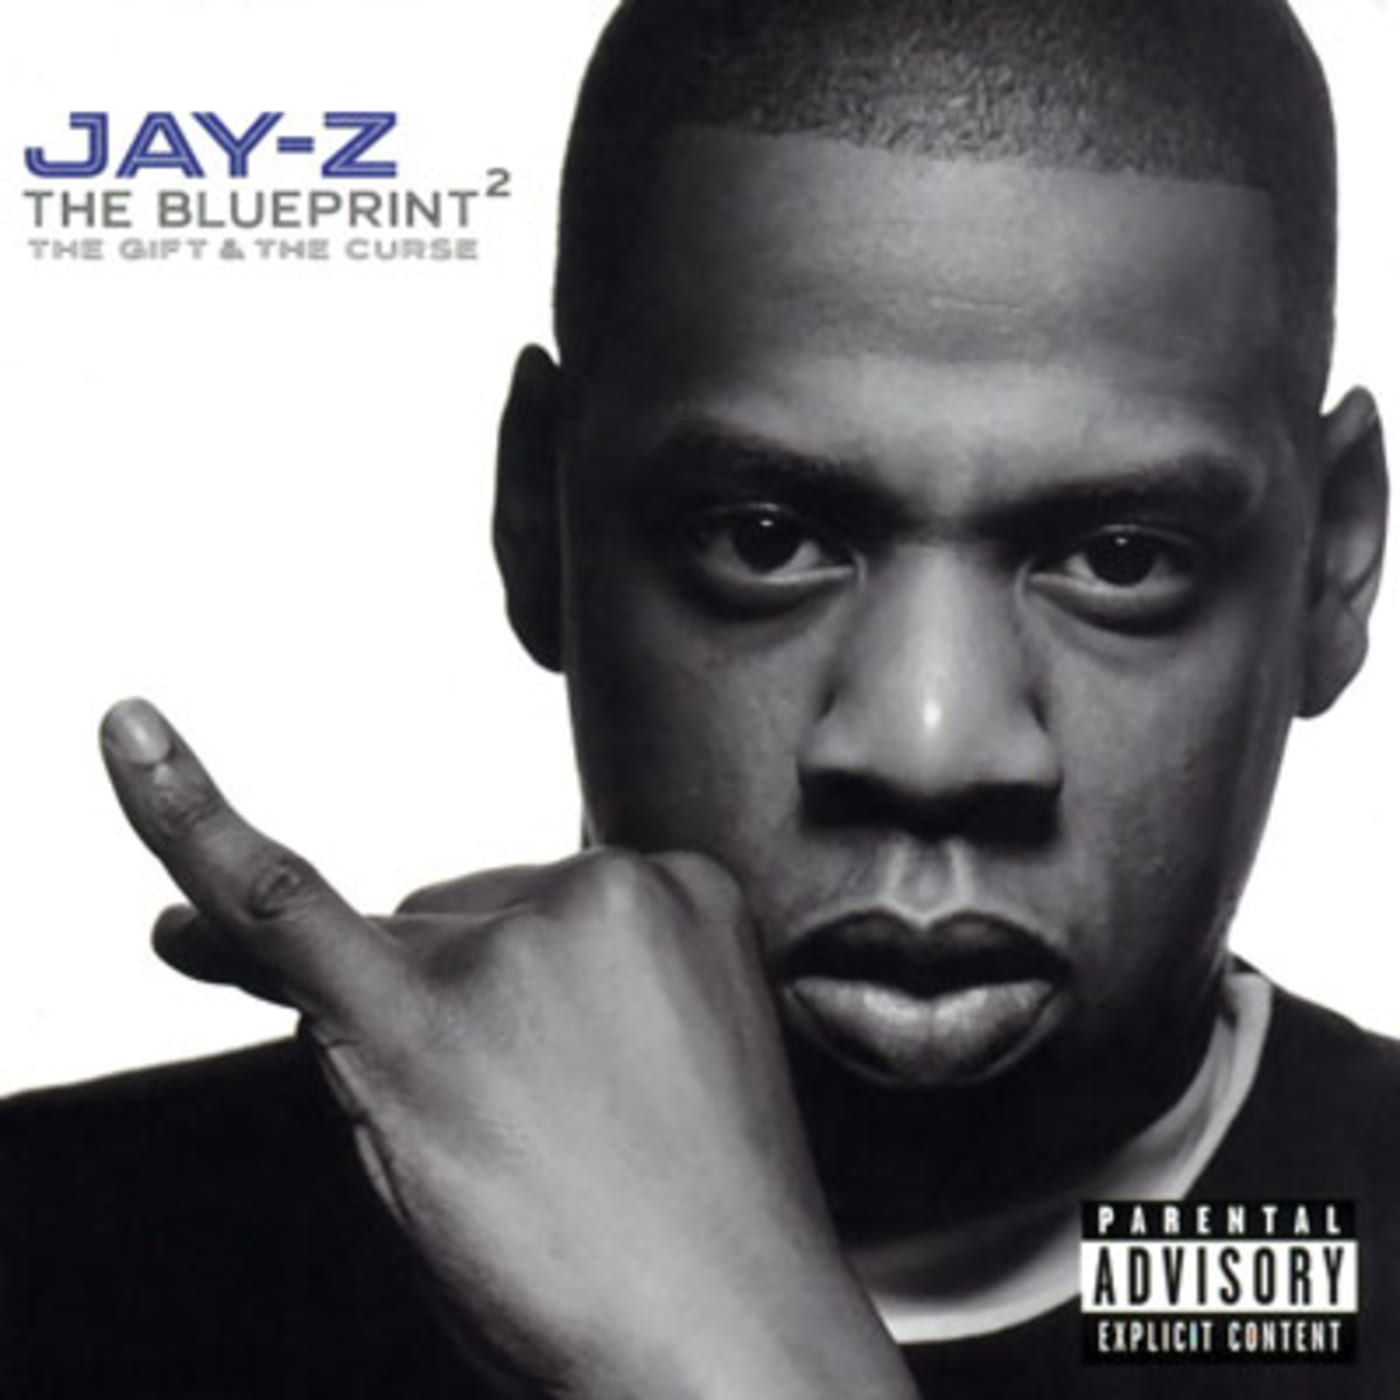 the blueprint 2 the gift and the curse